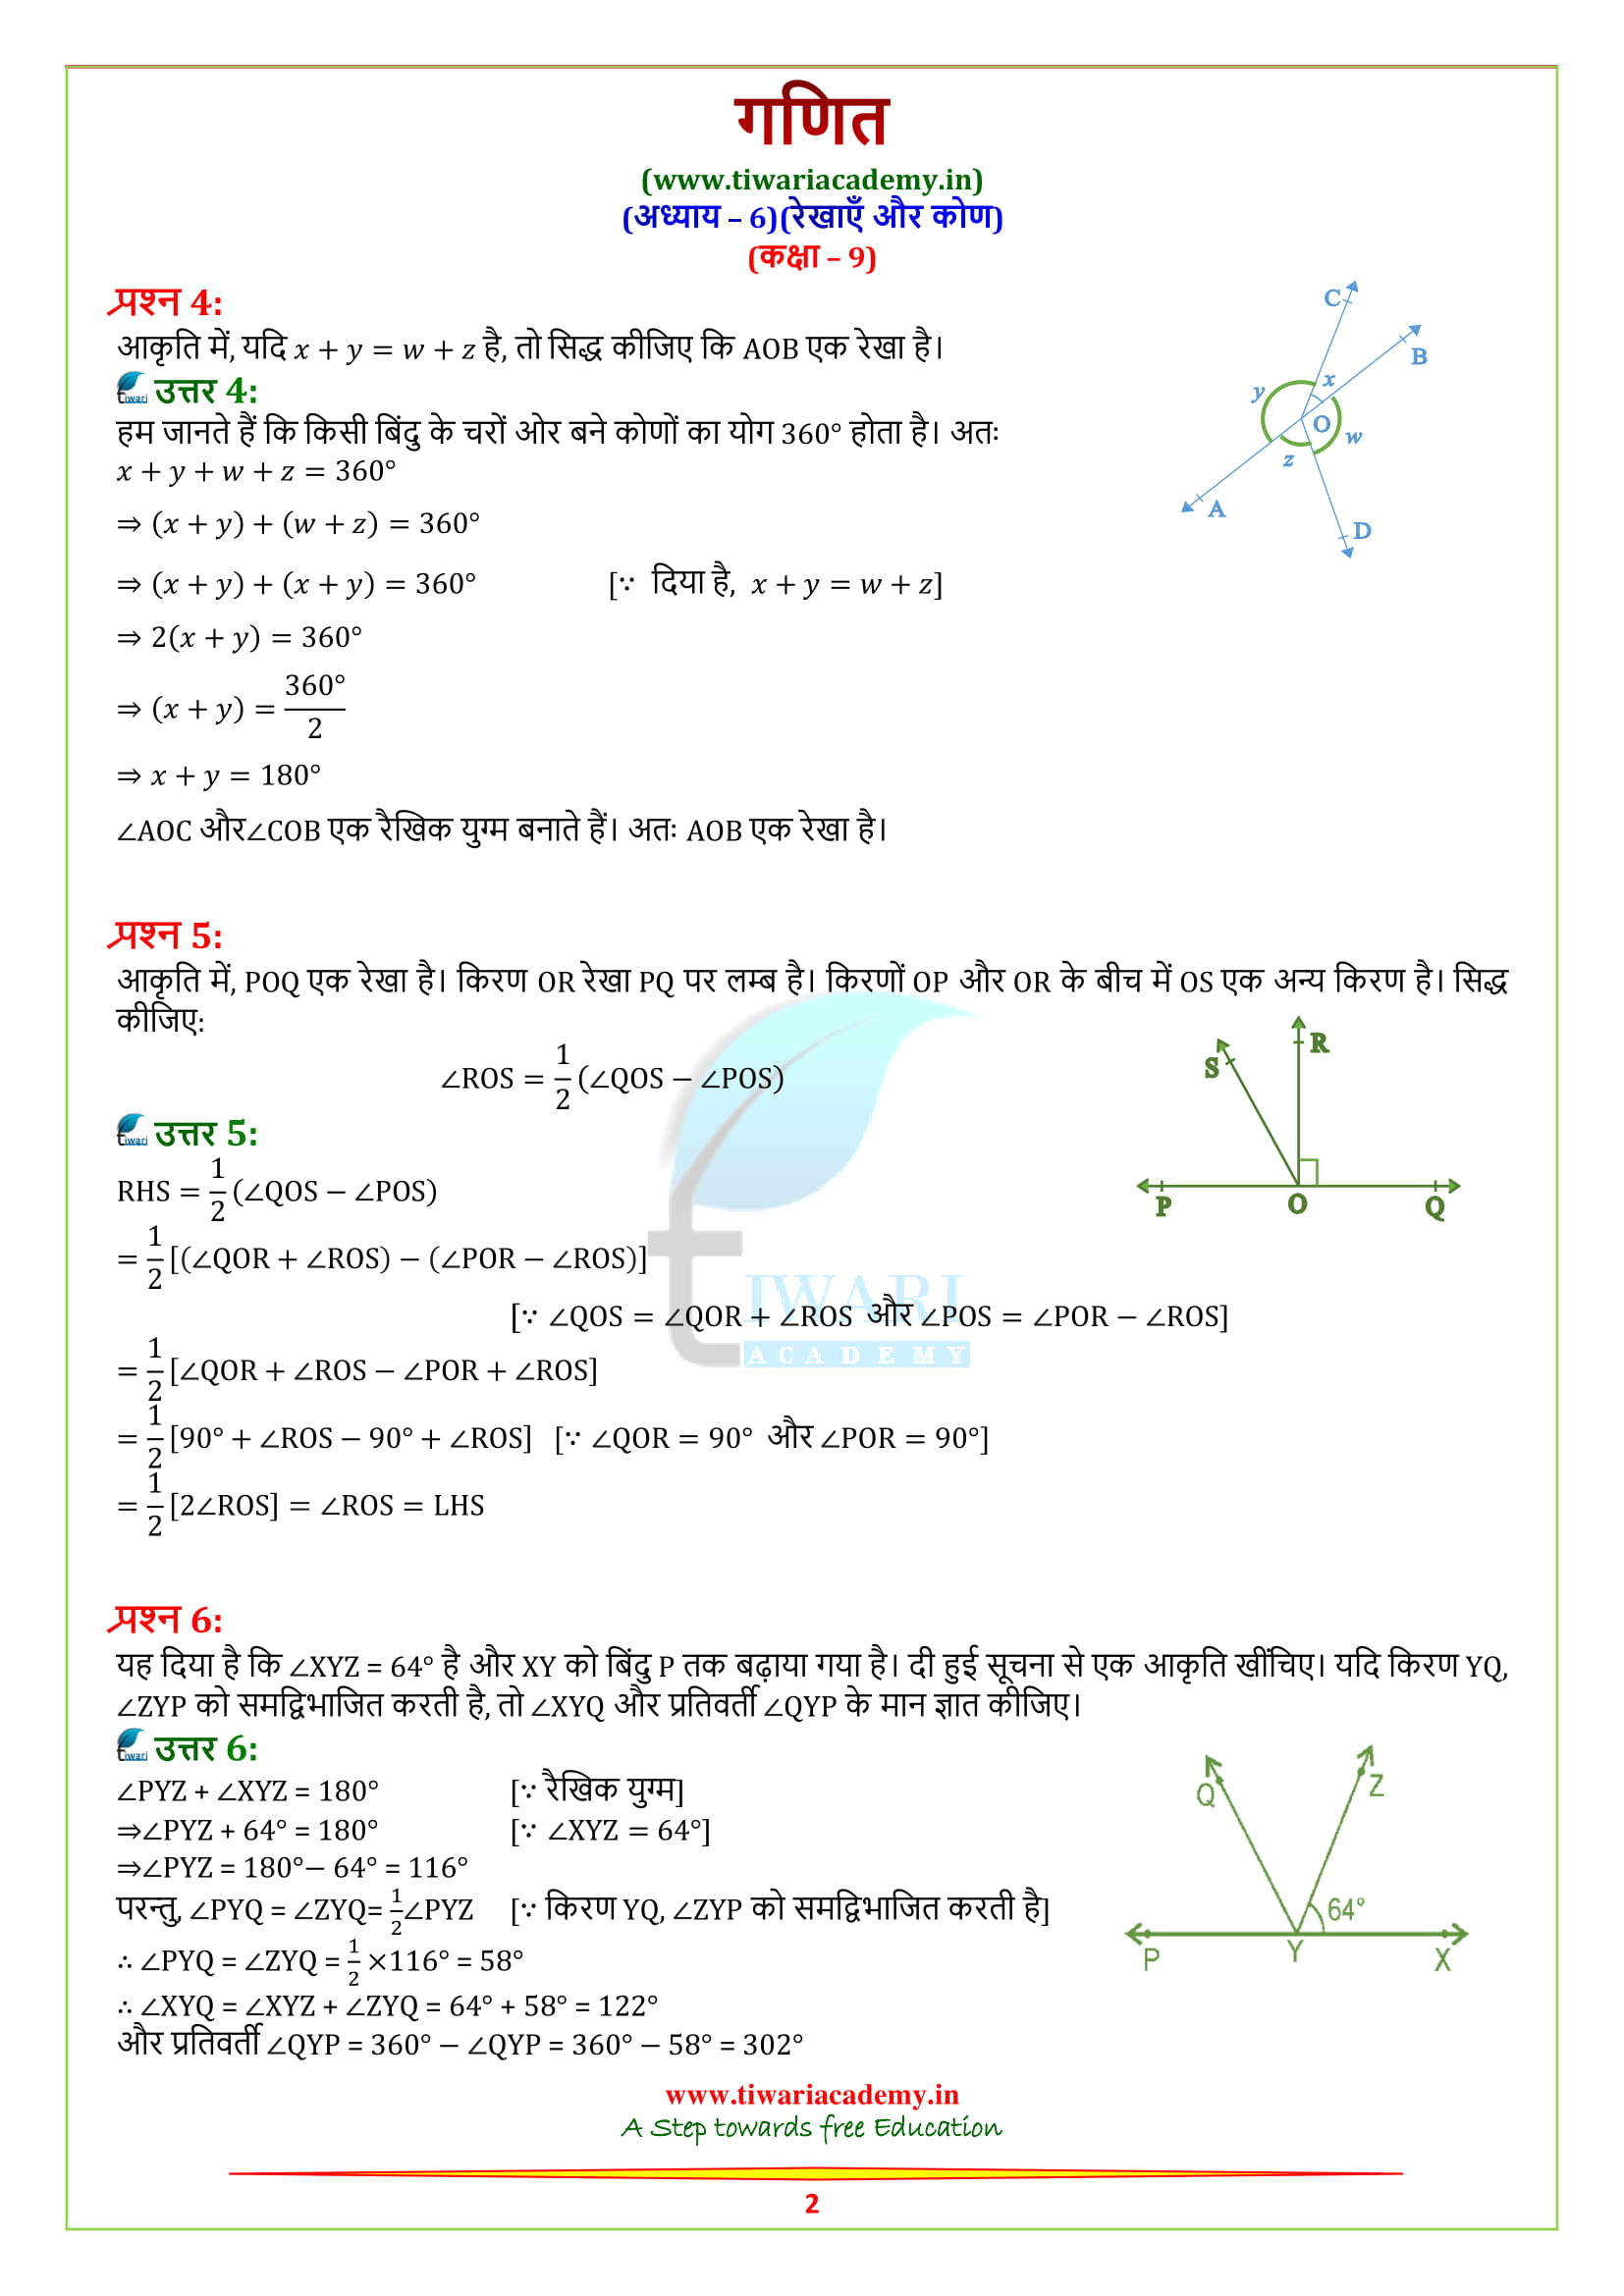 9 Maths Chapter 6 Exercise 6.1 solutions all question answers guide